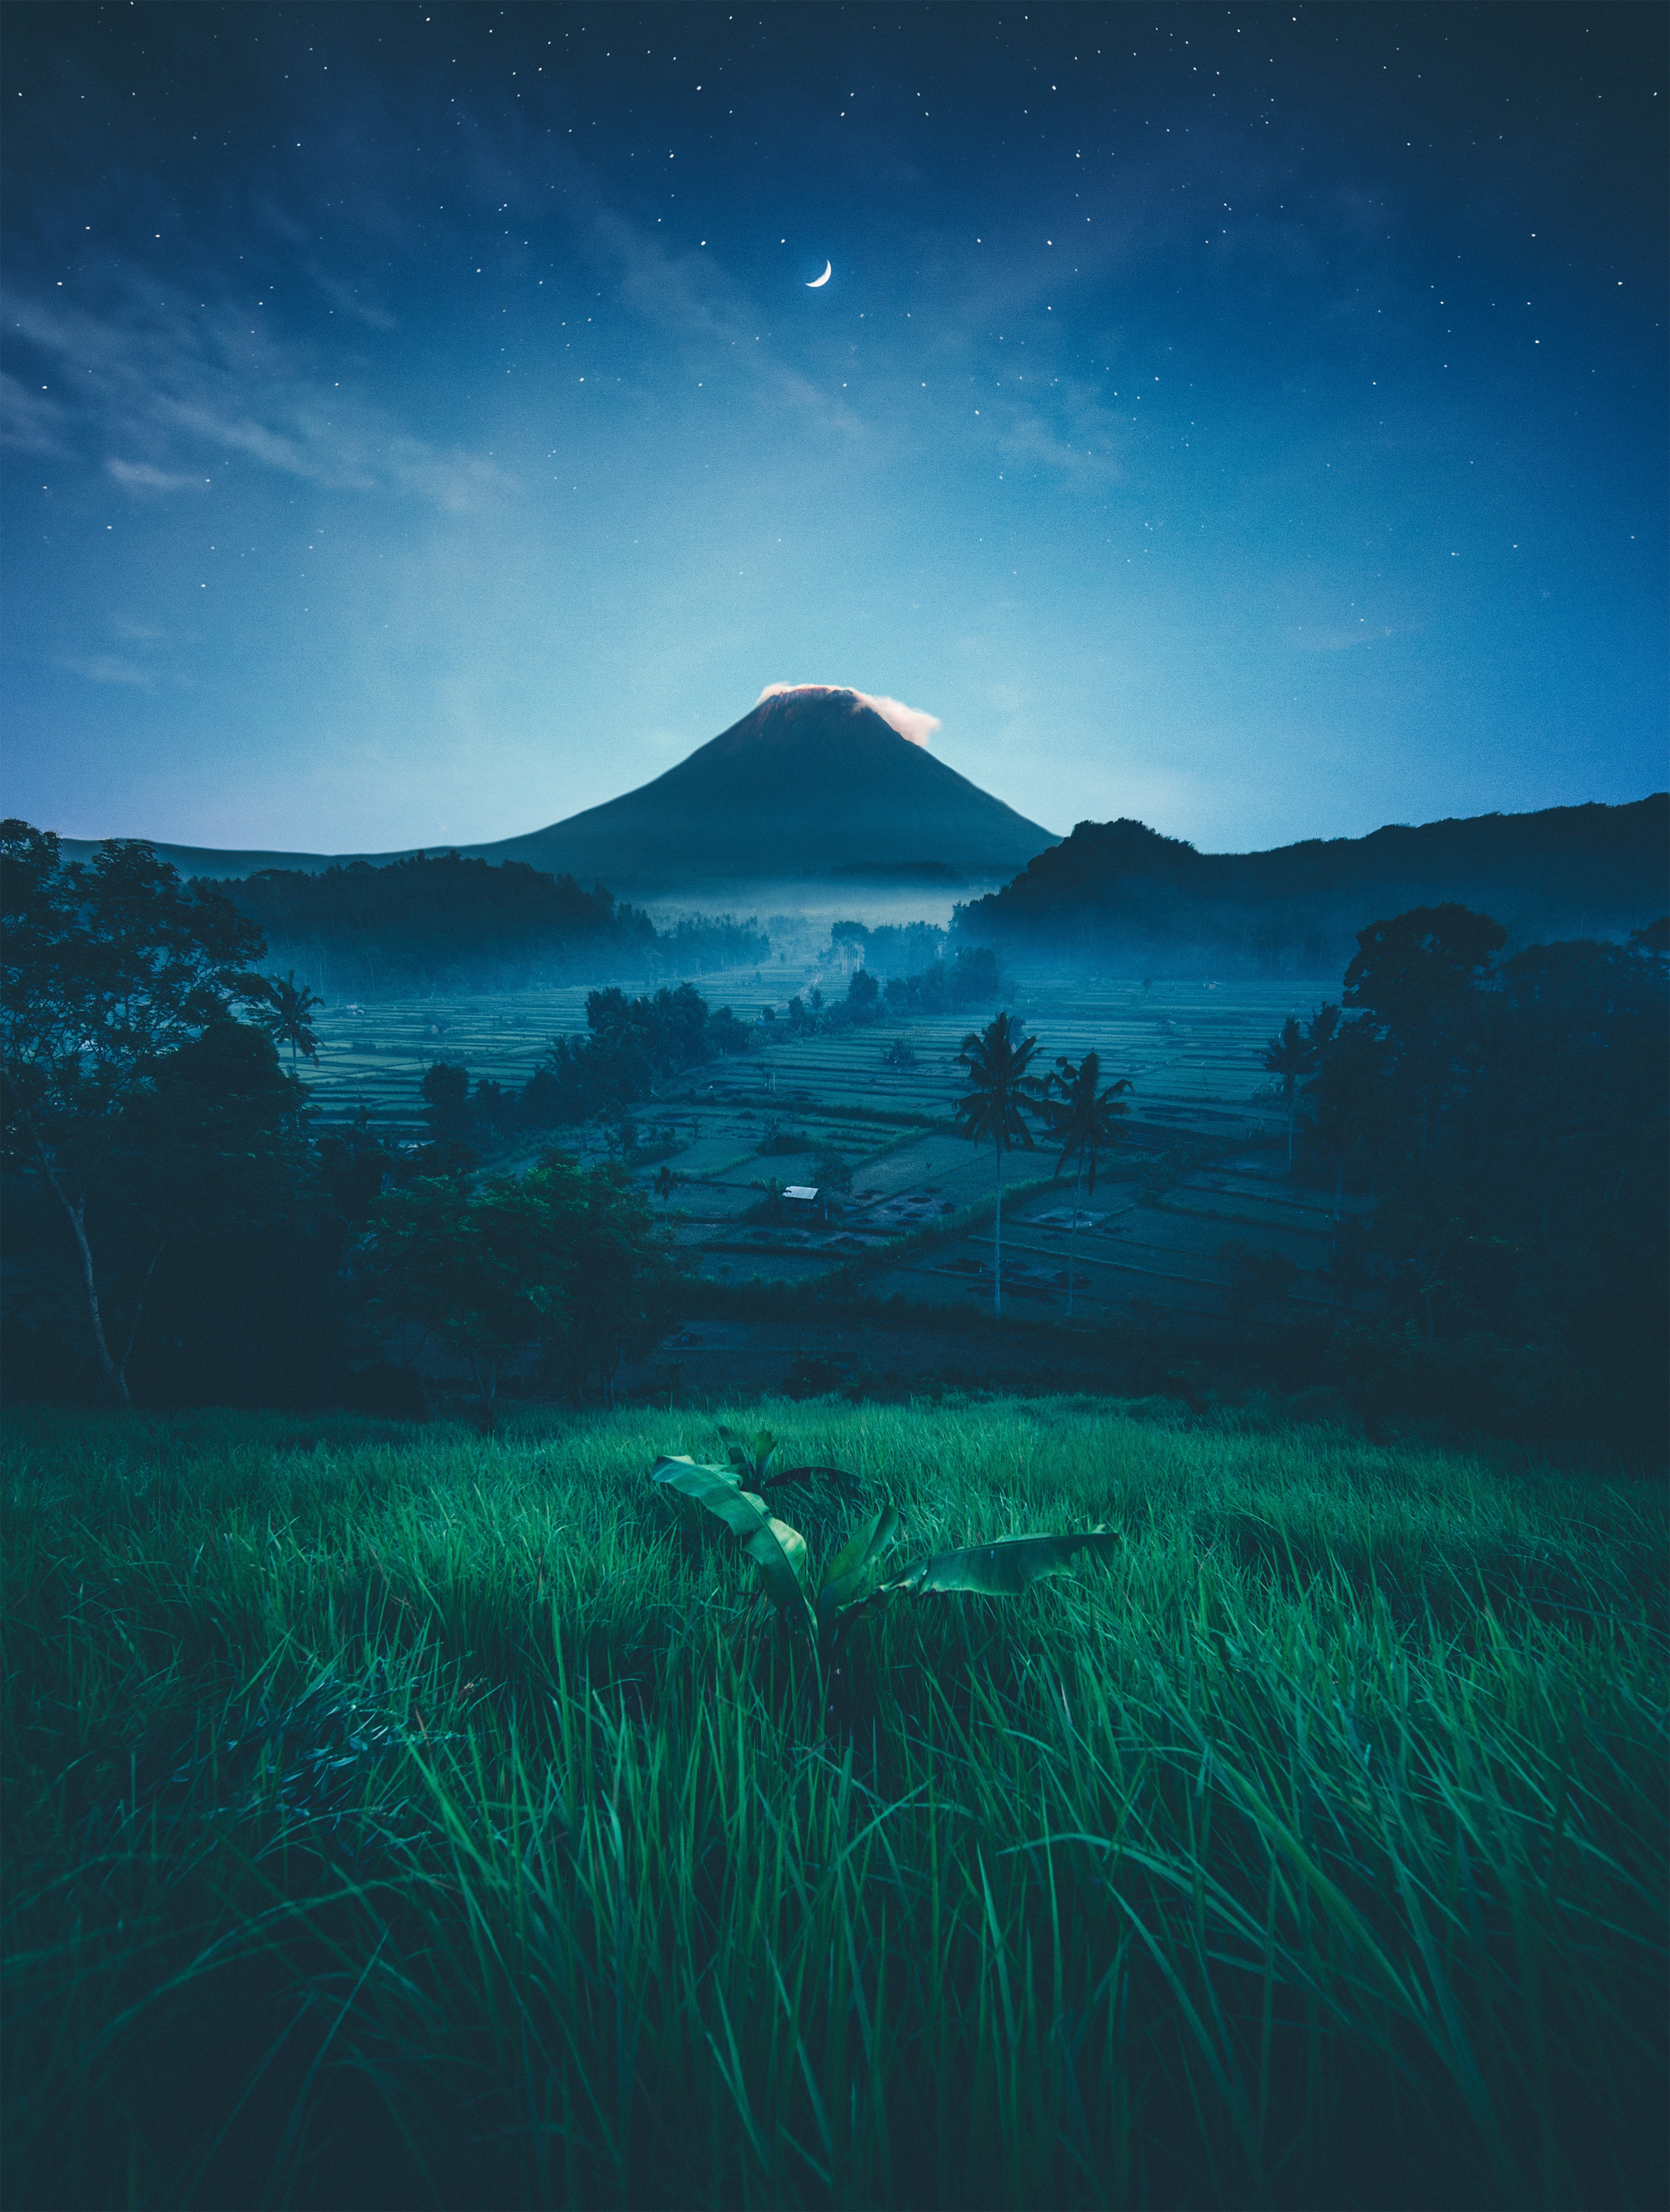 A mountain in Bali underneath a night sky with a crescent moon. A field of tall grasses is in the foreground, and agricultural fields are in the centre of the photo.